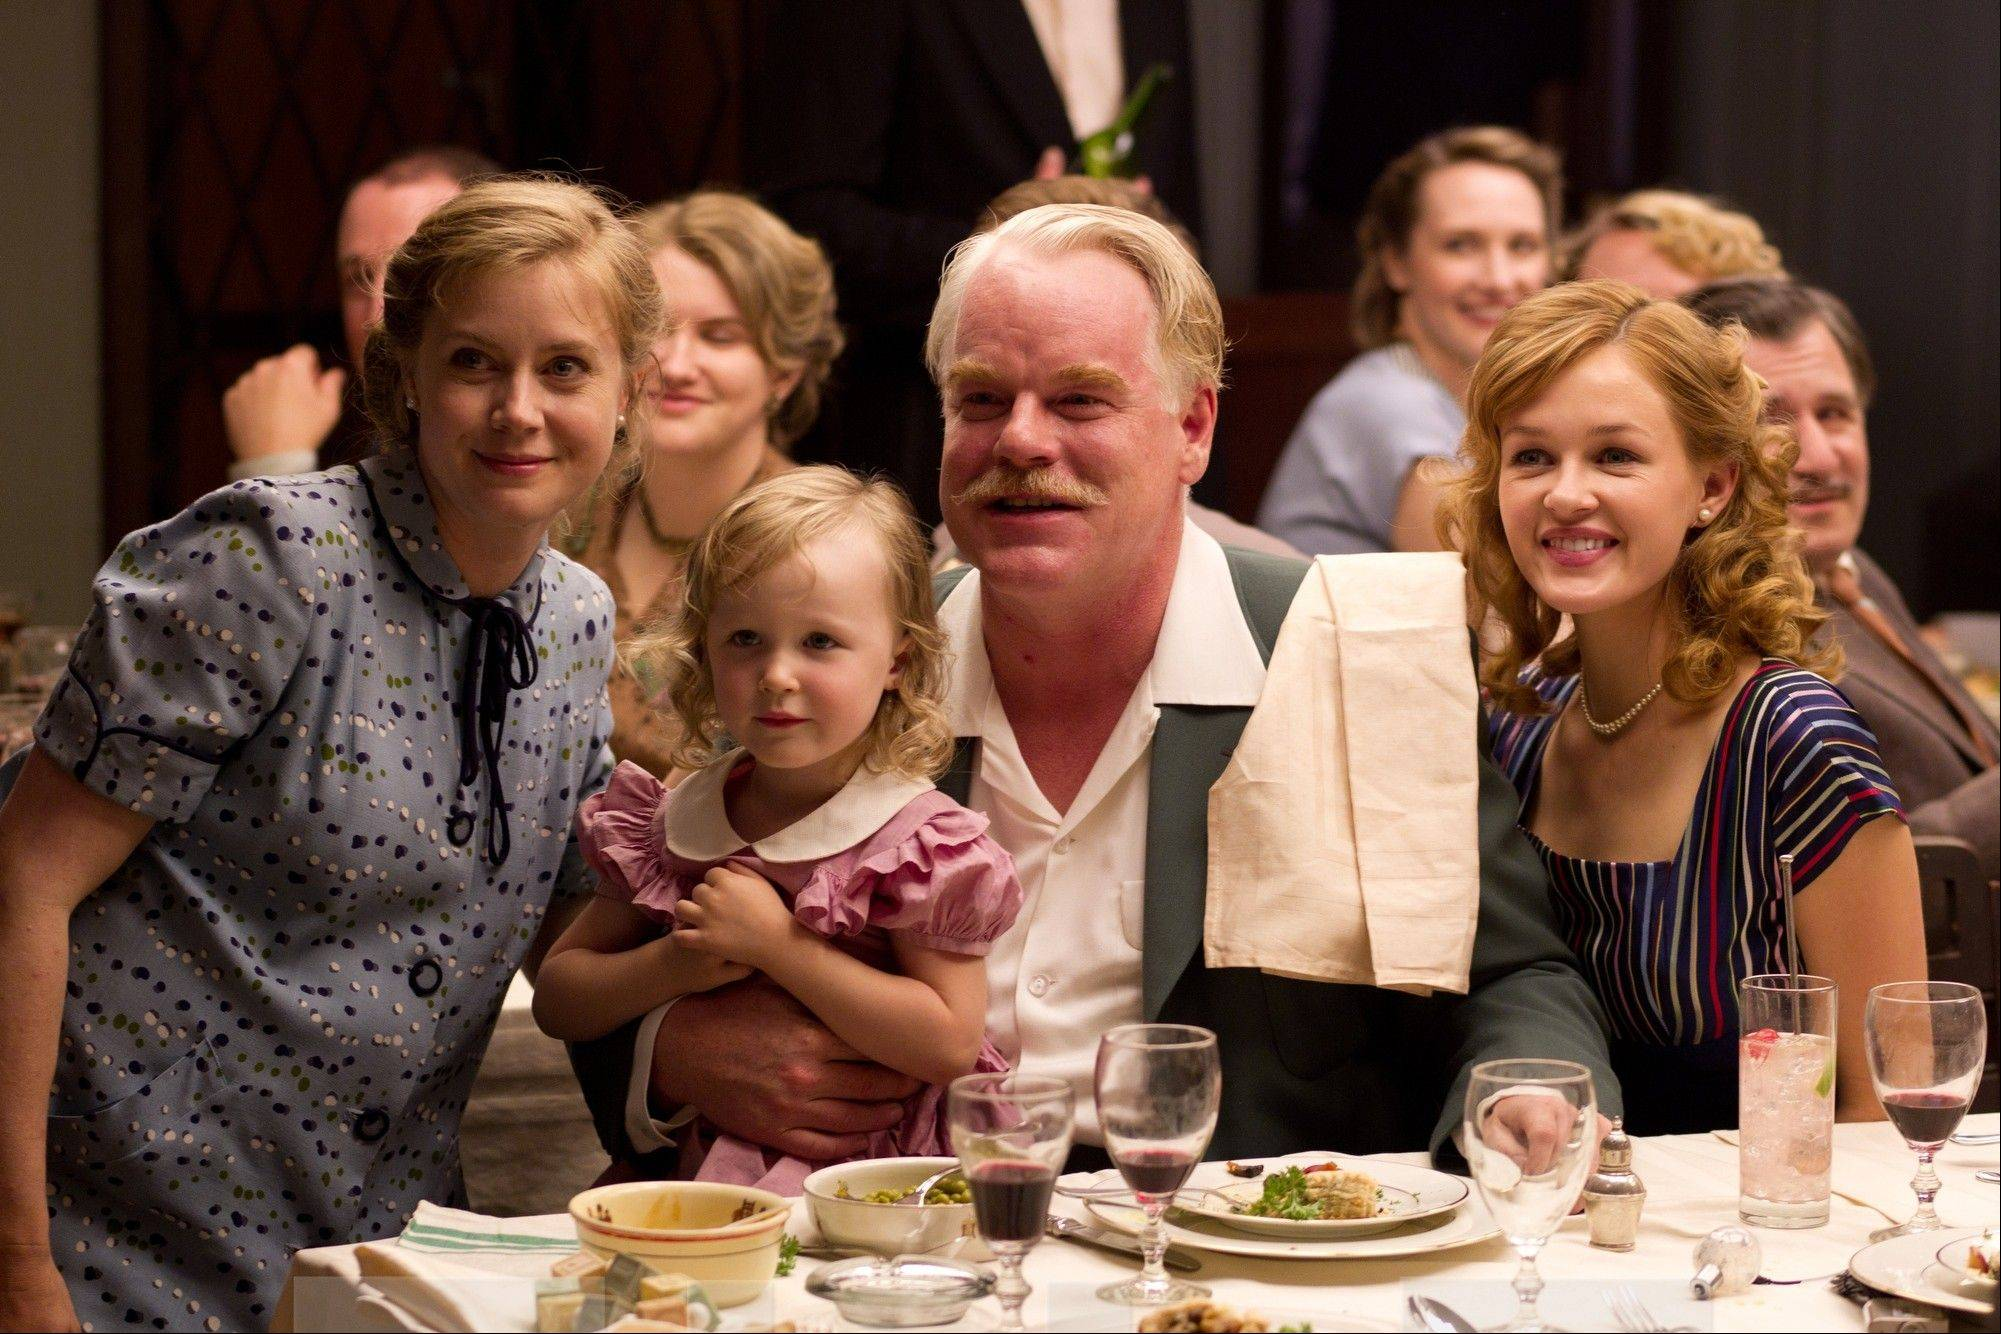 "This film image released by The Weinstein Company shows Amy Adams, left, and Philip Seymour Hoffman, center, in a scene from ""The Master."" Adams was nominated for an Academy Award for best supporting actress on Thursday, Jan. 10, 2013, for her role in the film. Hoffman was also nominated for best supporting actor."